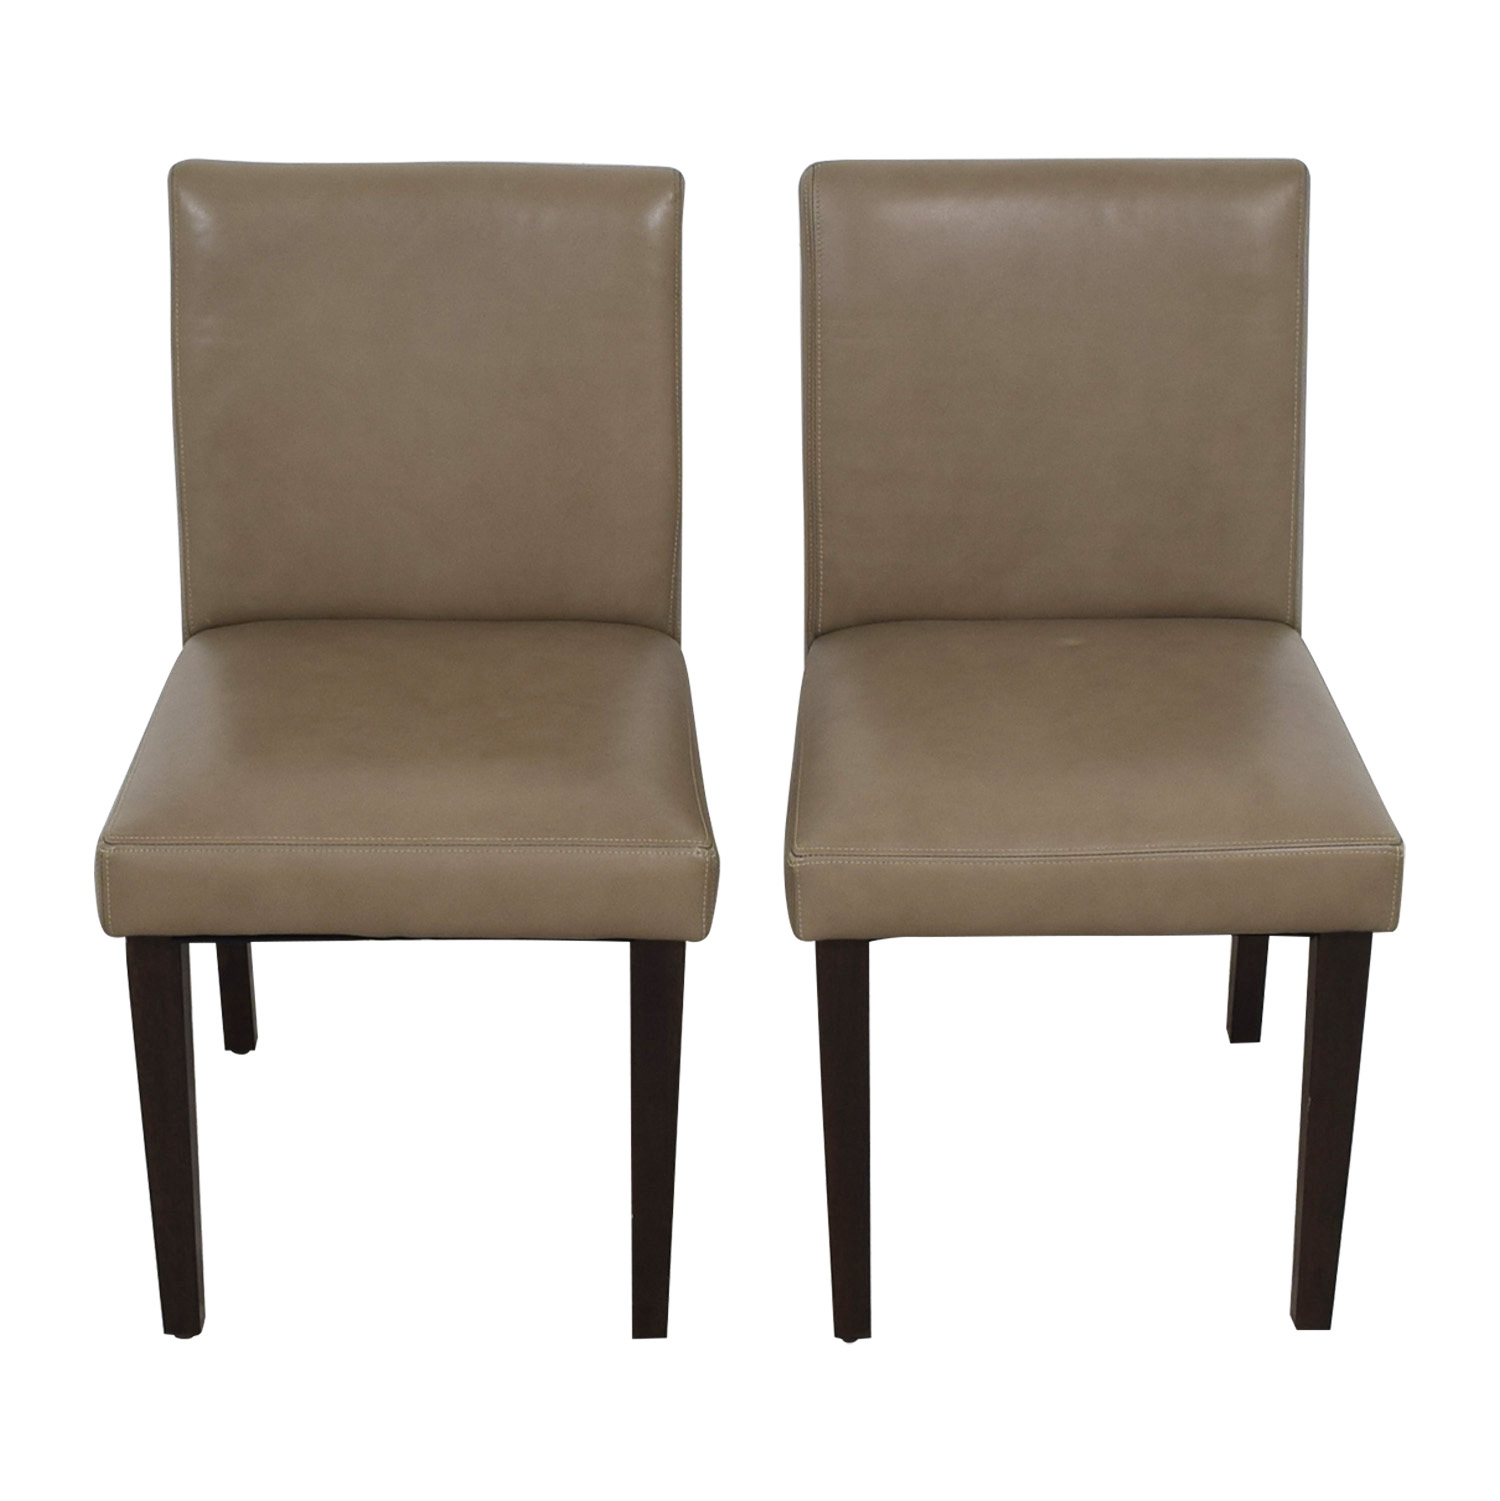 Porter Leather Chair Set Of 2: West Elm West Elm Porter Taupe Leather Dining